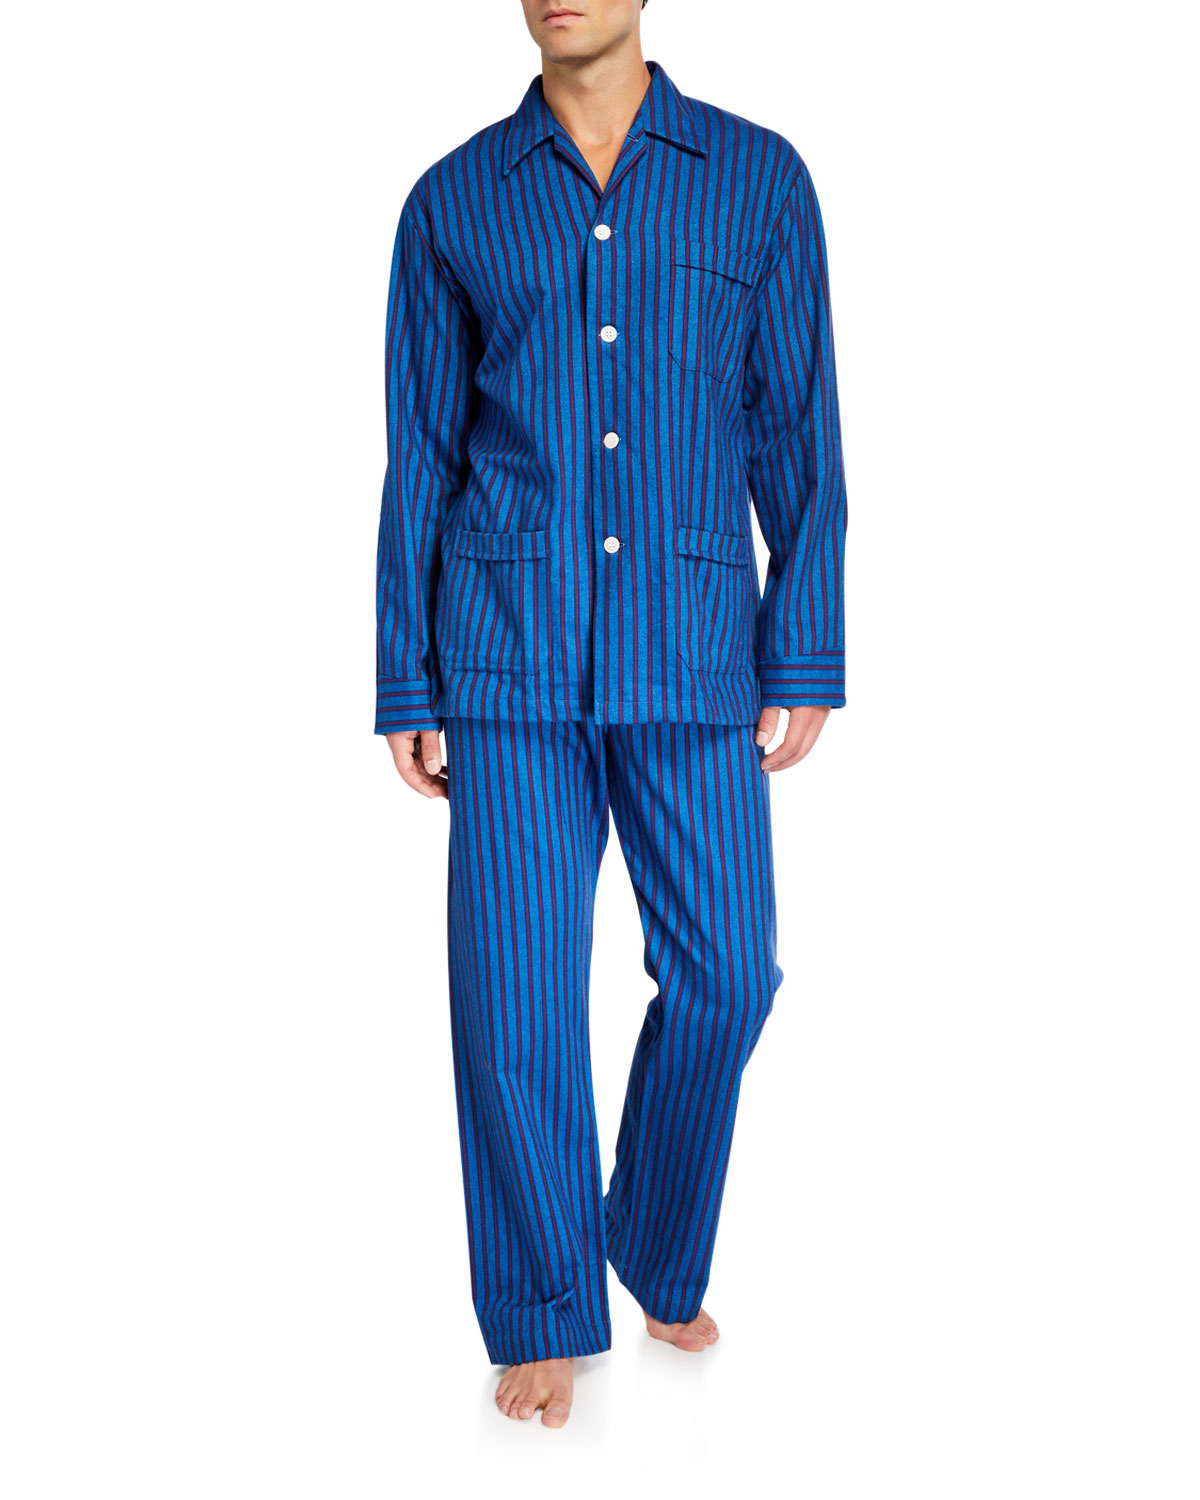 Derek Rose Tops MEN'S ARCTIC 19 STRIPED CLASSIC PAJAMAS